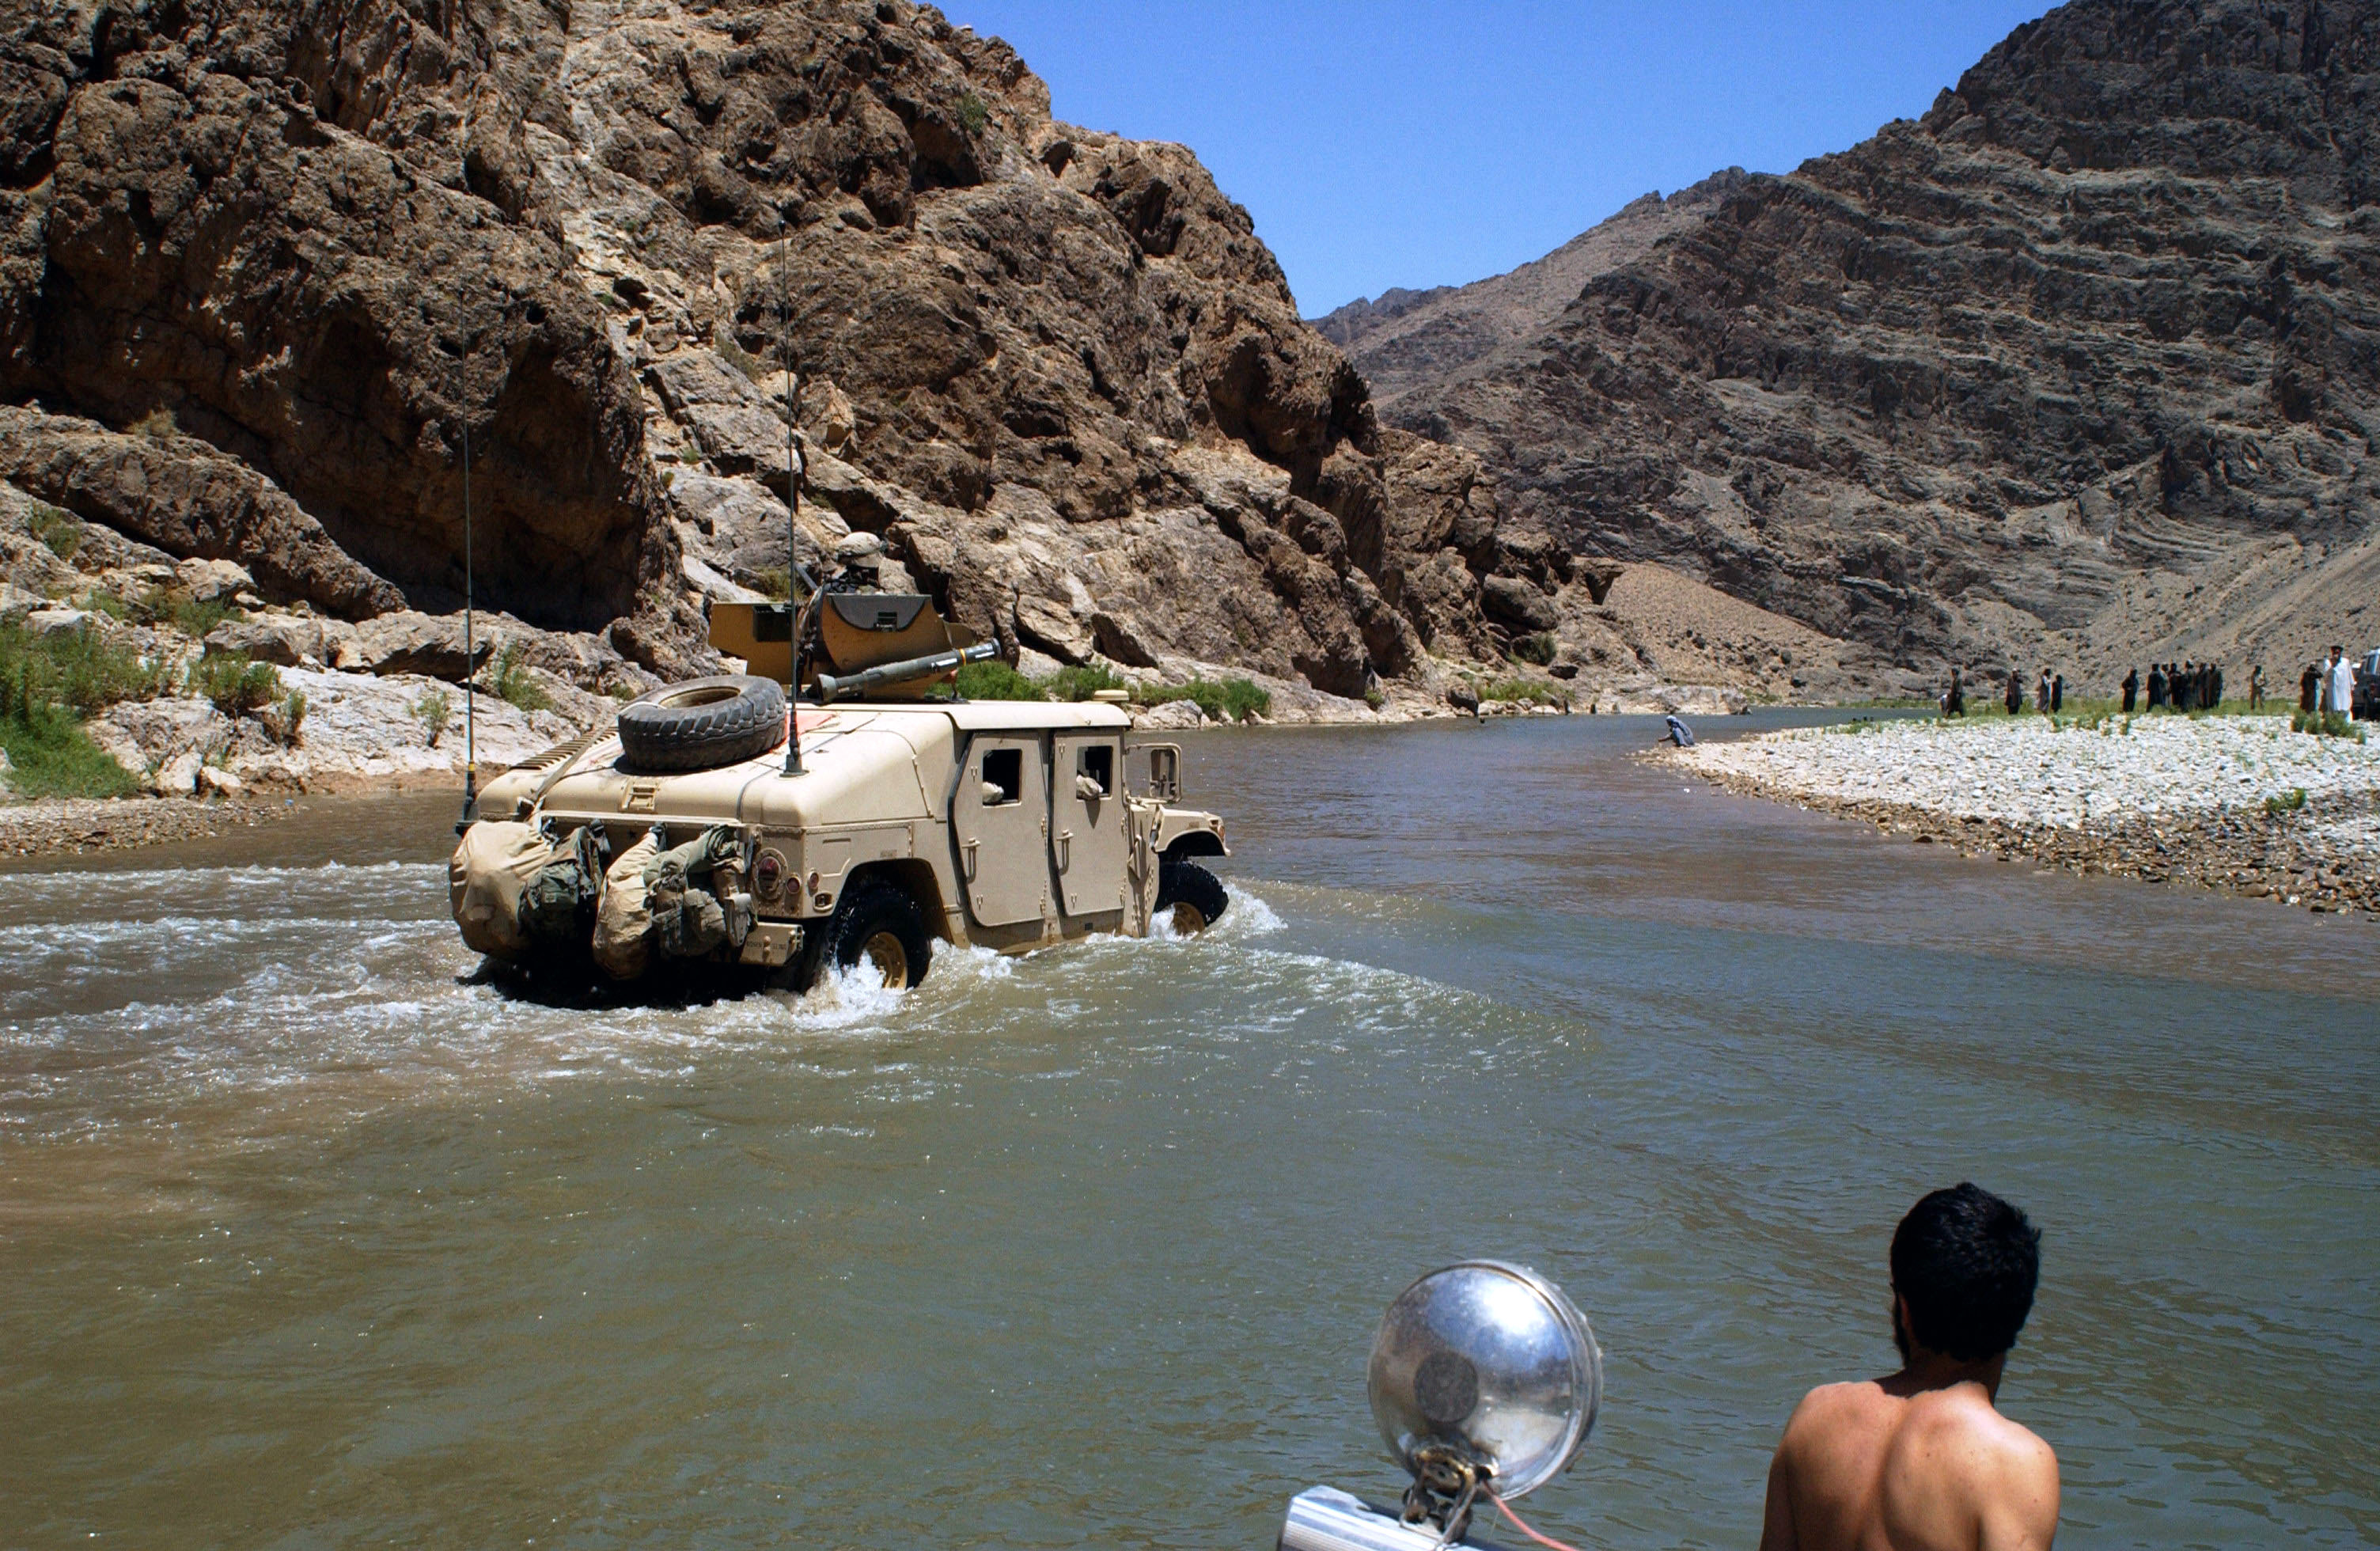 Description us humvee crossing a small river in afghanistan